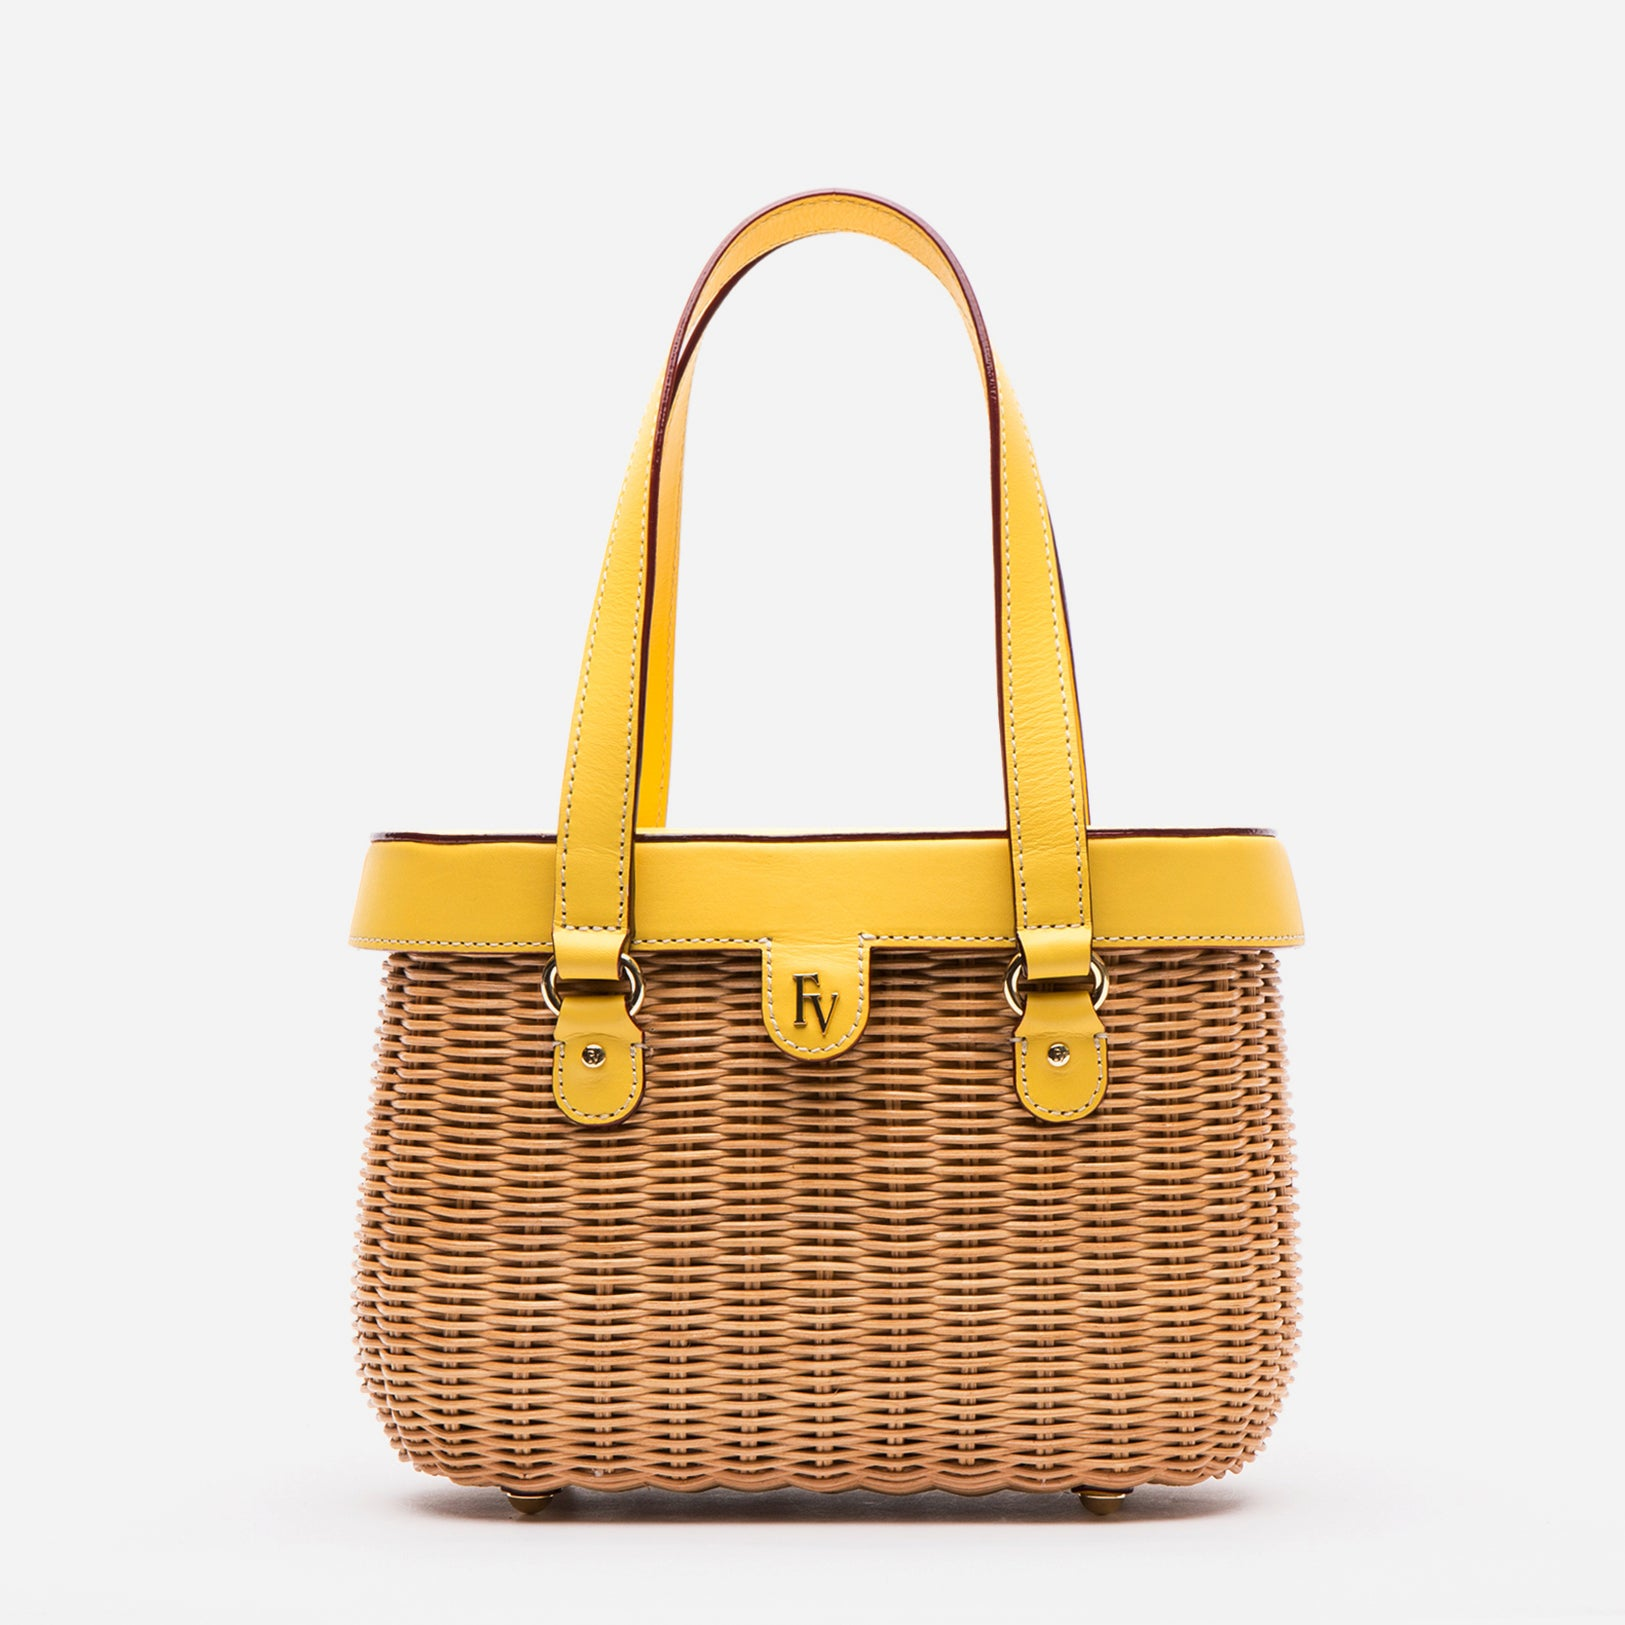 Arielle Wicker Basket Canary